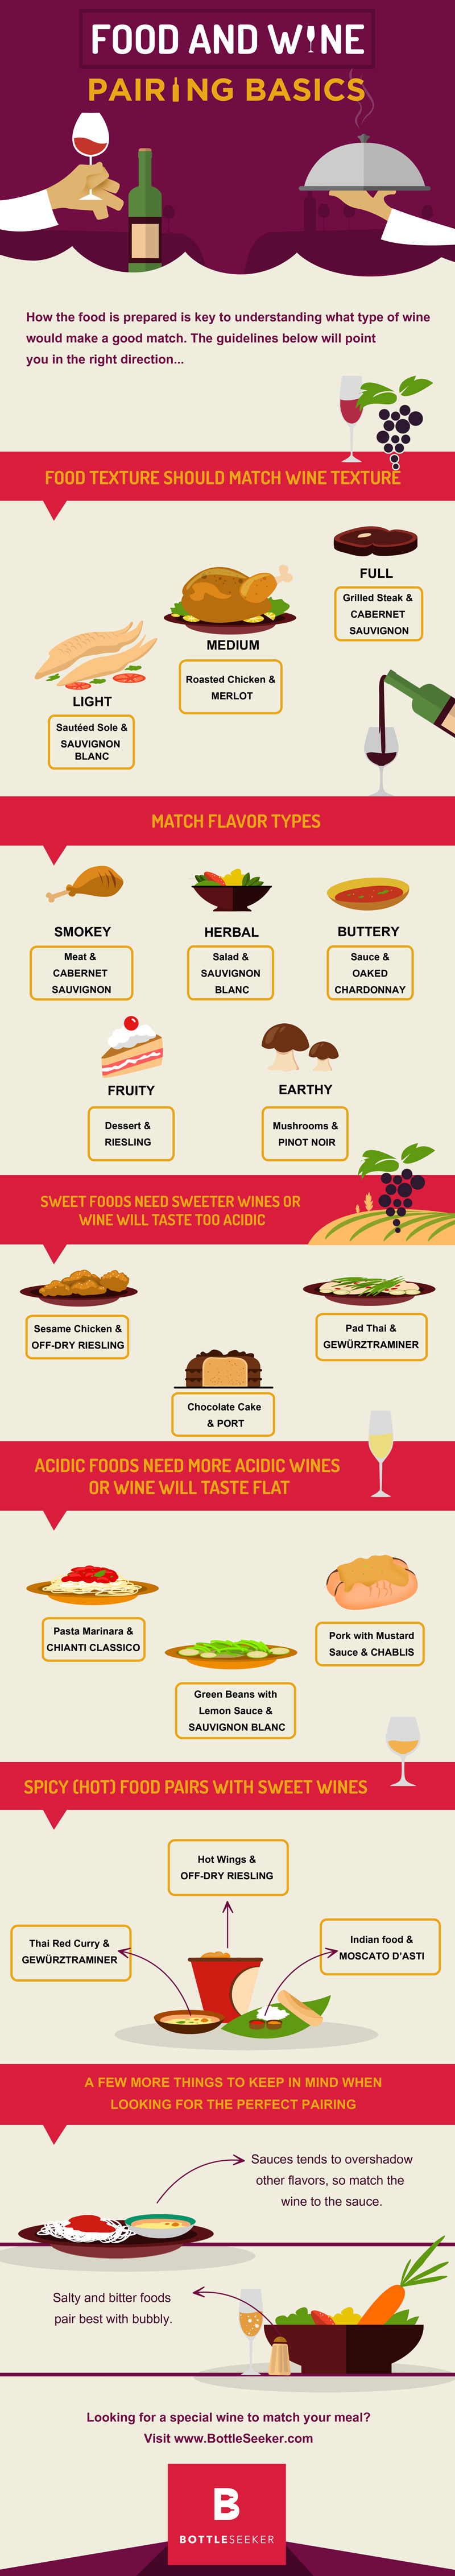 food-and-wine-pairing-guide-infographic